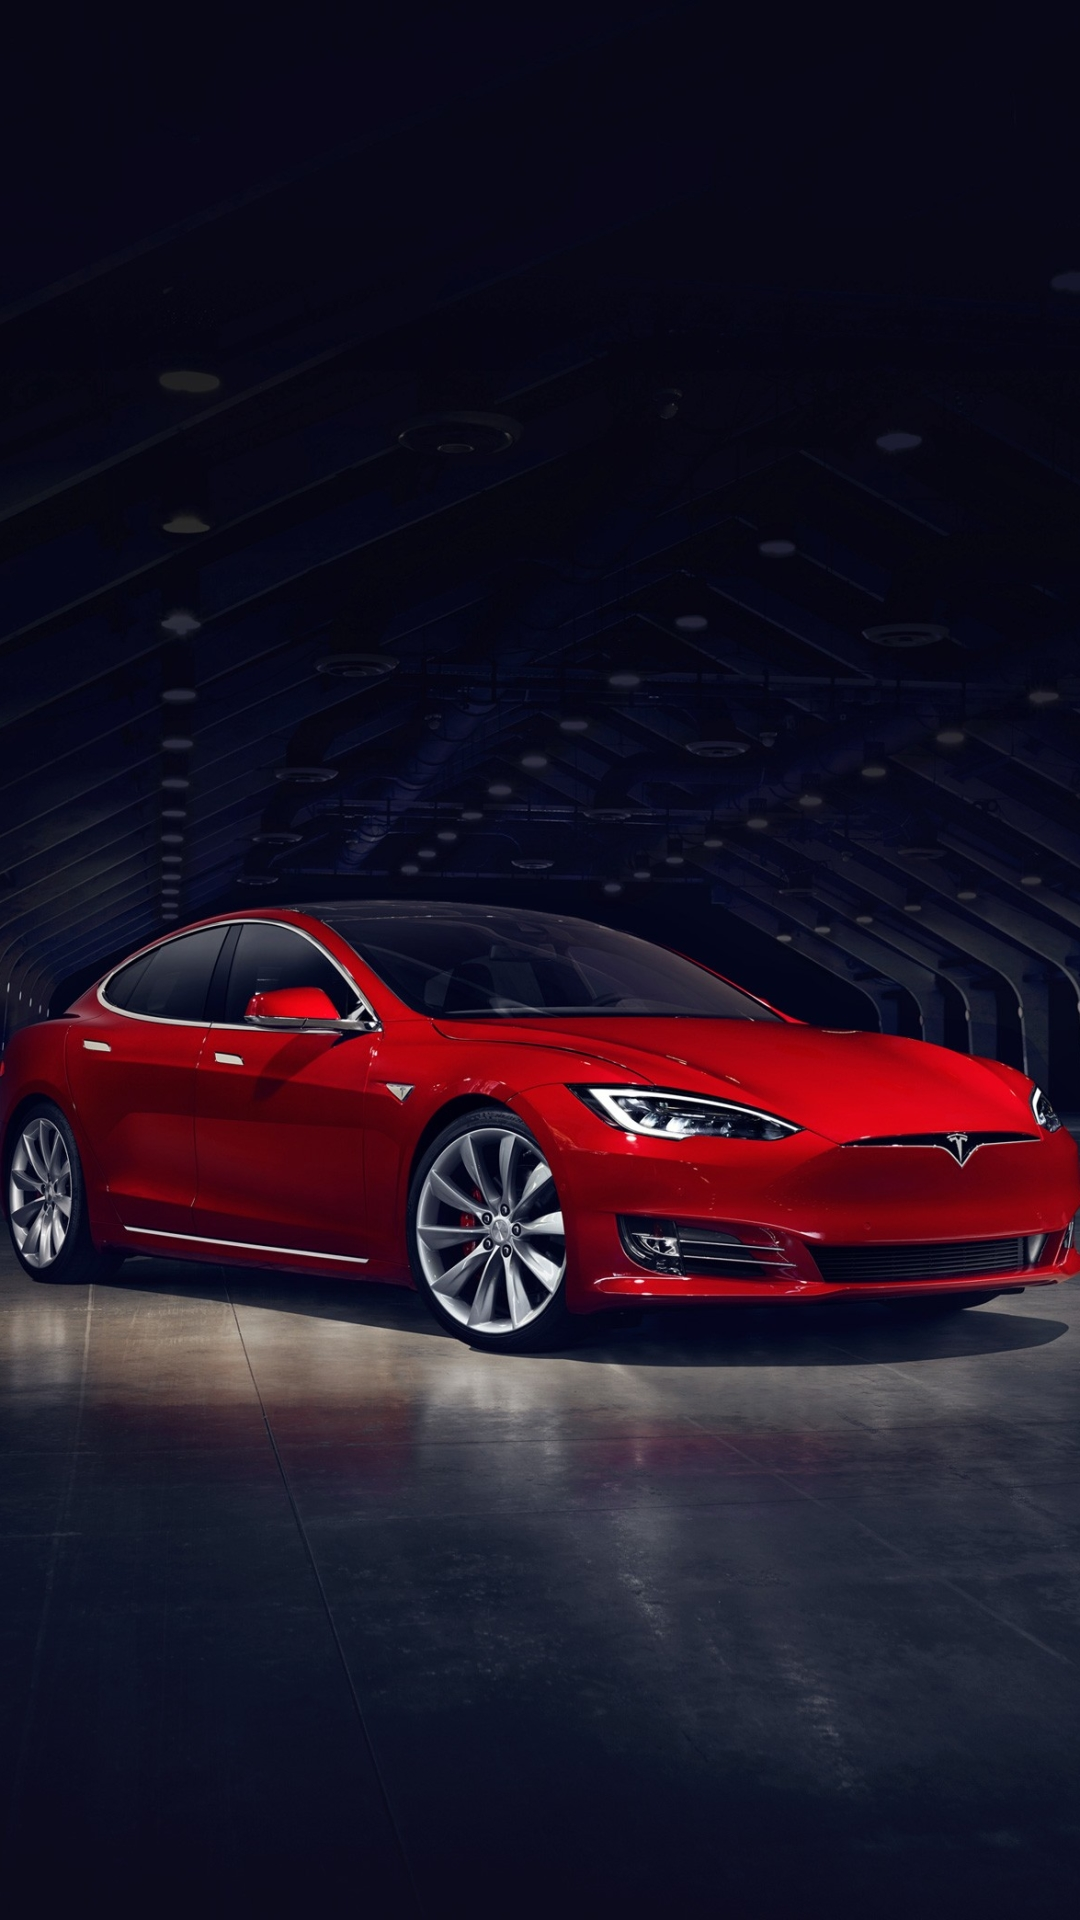 iPhone wallpaper Red Tesla Model S 3Wallpapers : notre sélection de fonds d'écran du 13/02/2018